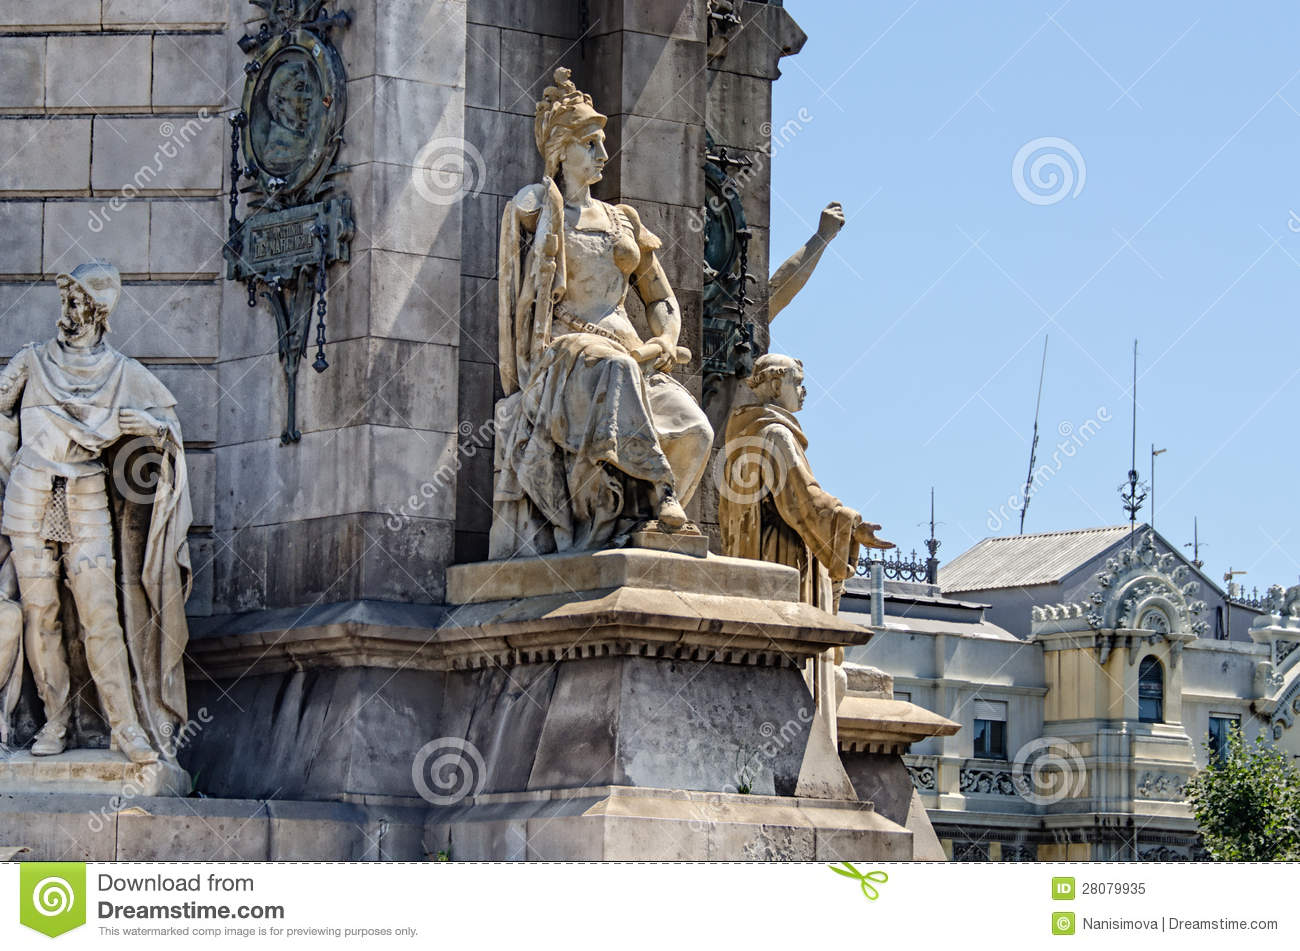 Download Sculpture At Monument On Placa Espana Barcelona Spain Stock Image - Image of decorative, fountain: 28079935